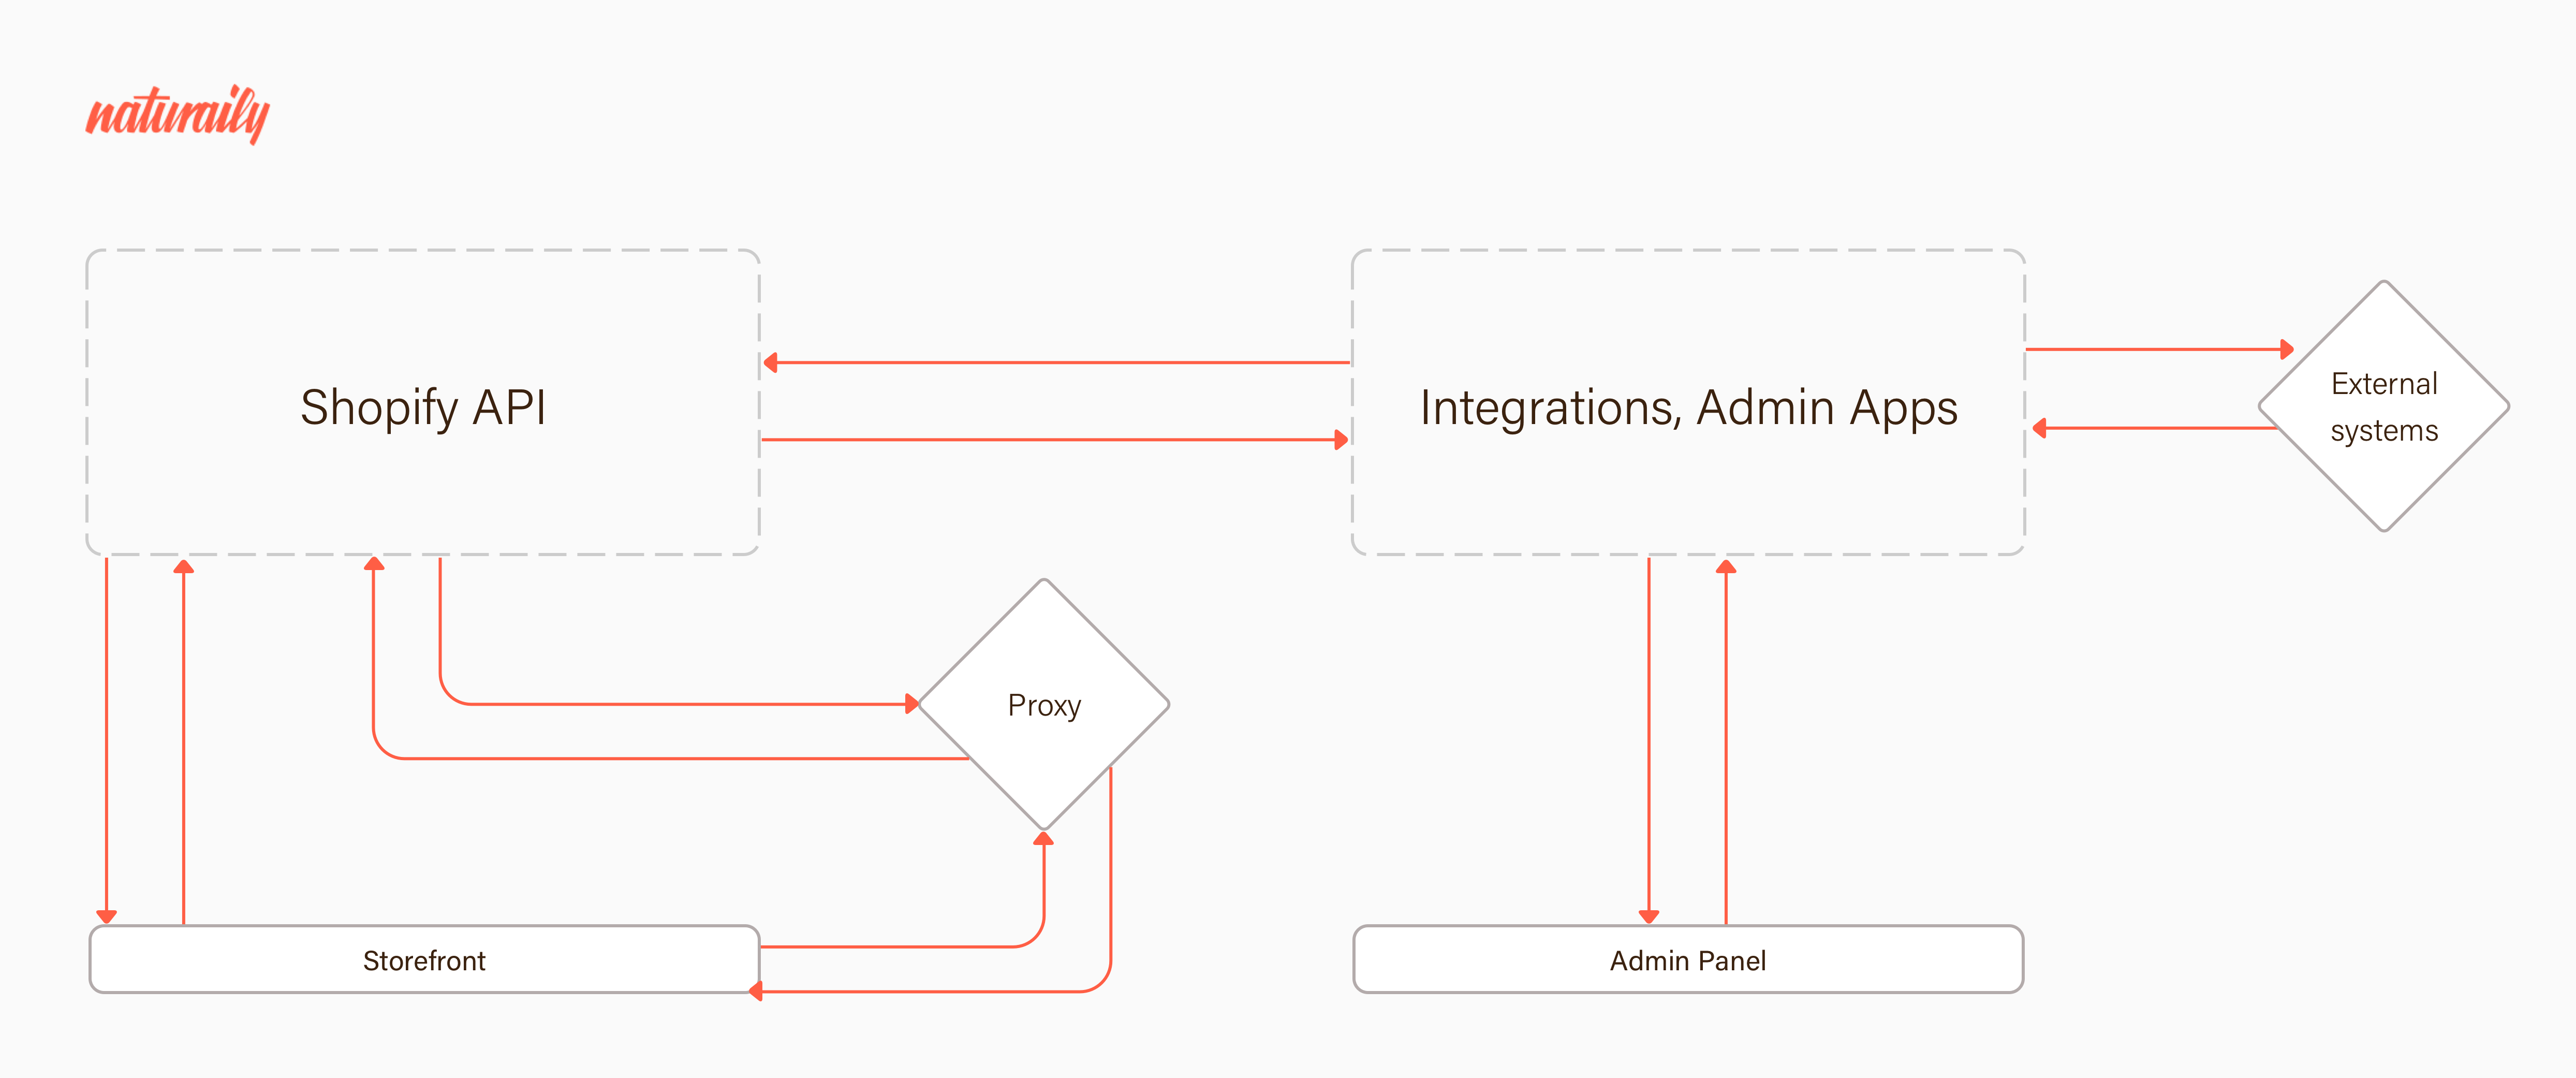 Communication between Shopify's API, Storefront and Integrations